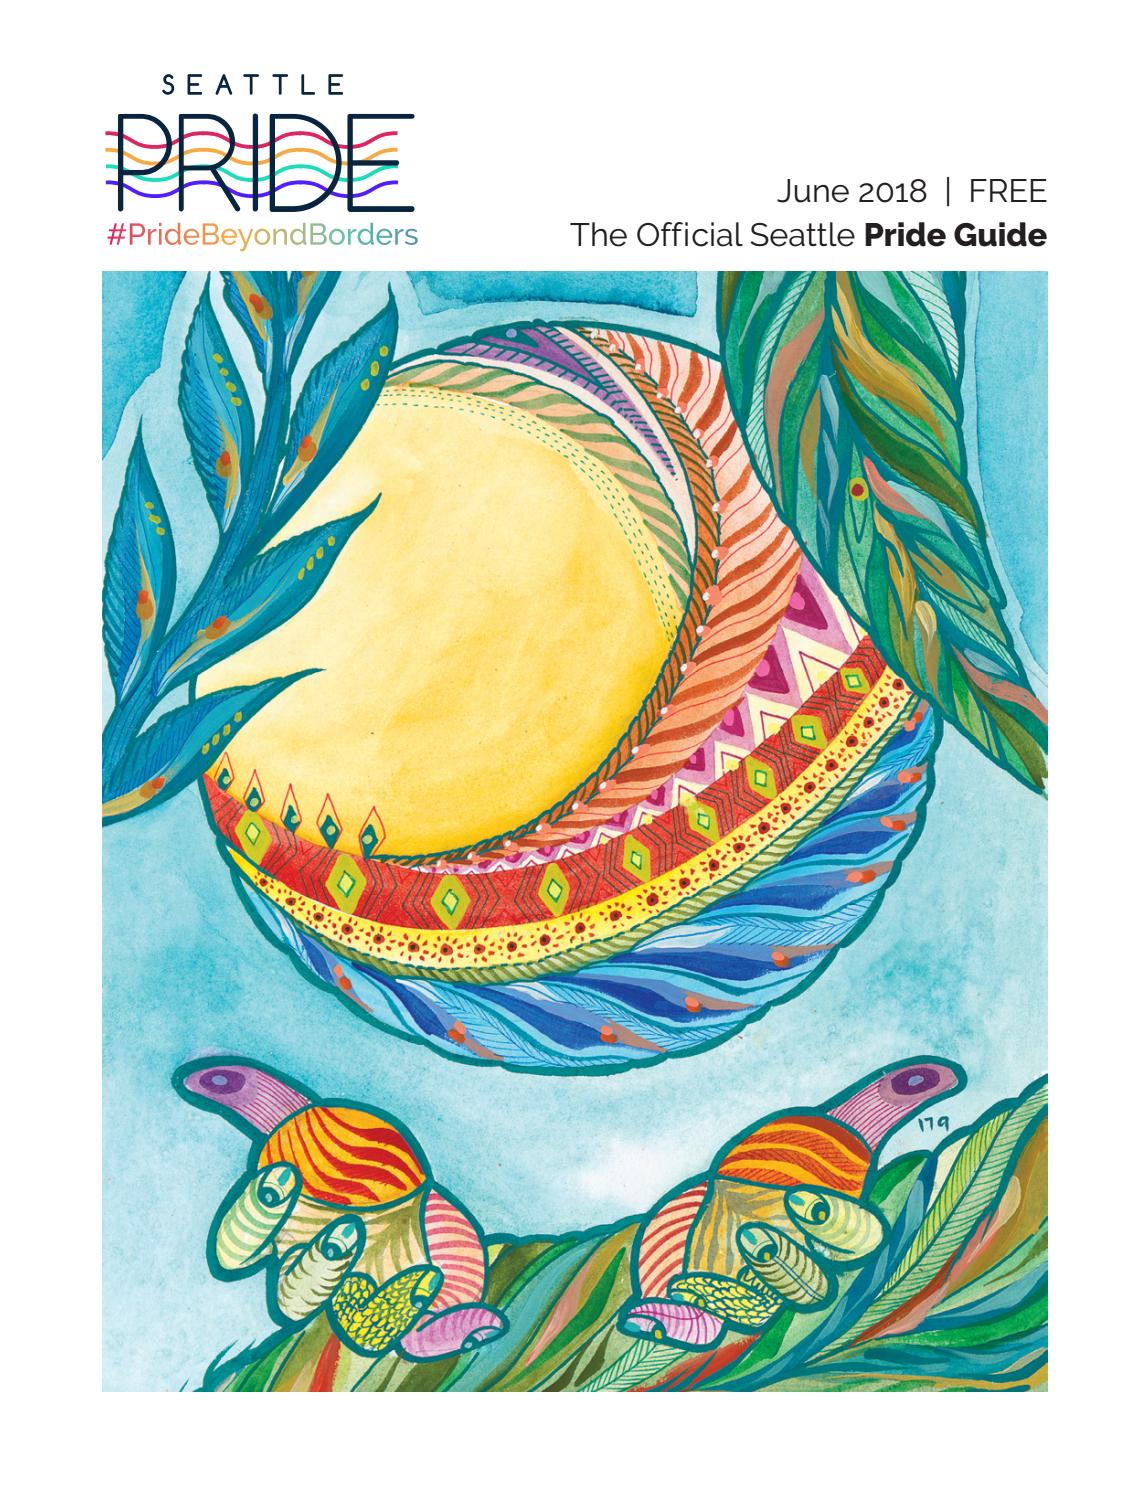 097a615dfa9a The Official Seattle Pride Guide 2018 by Seattle Pride Guide - issuu